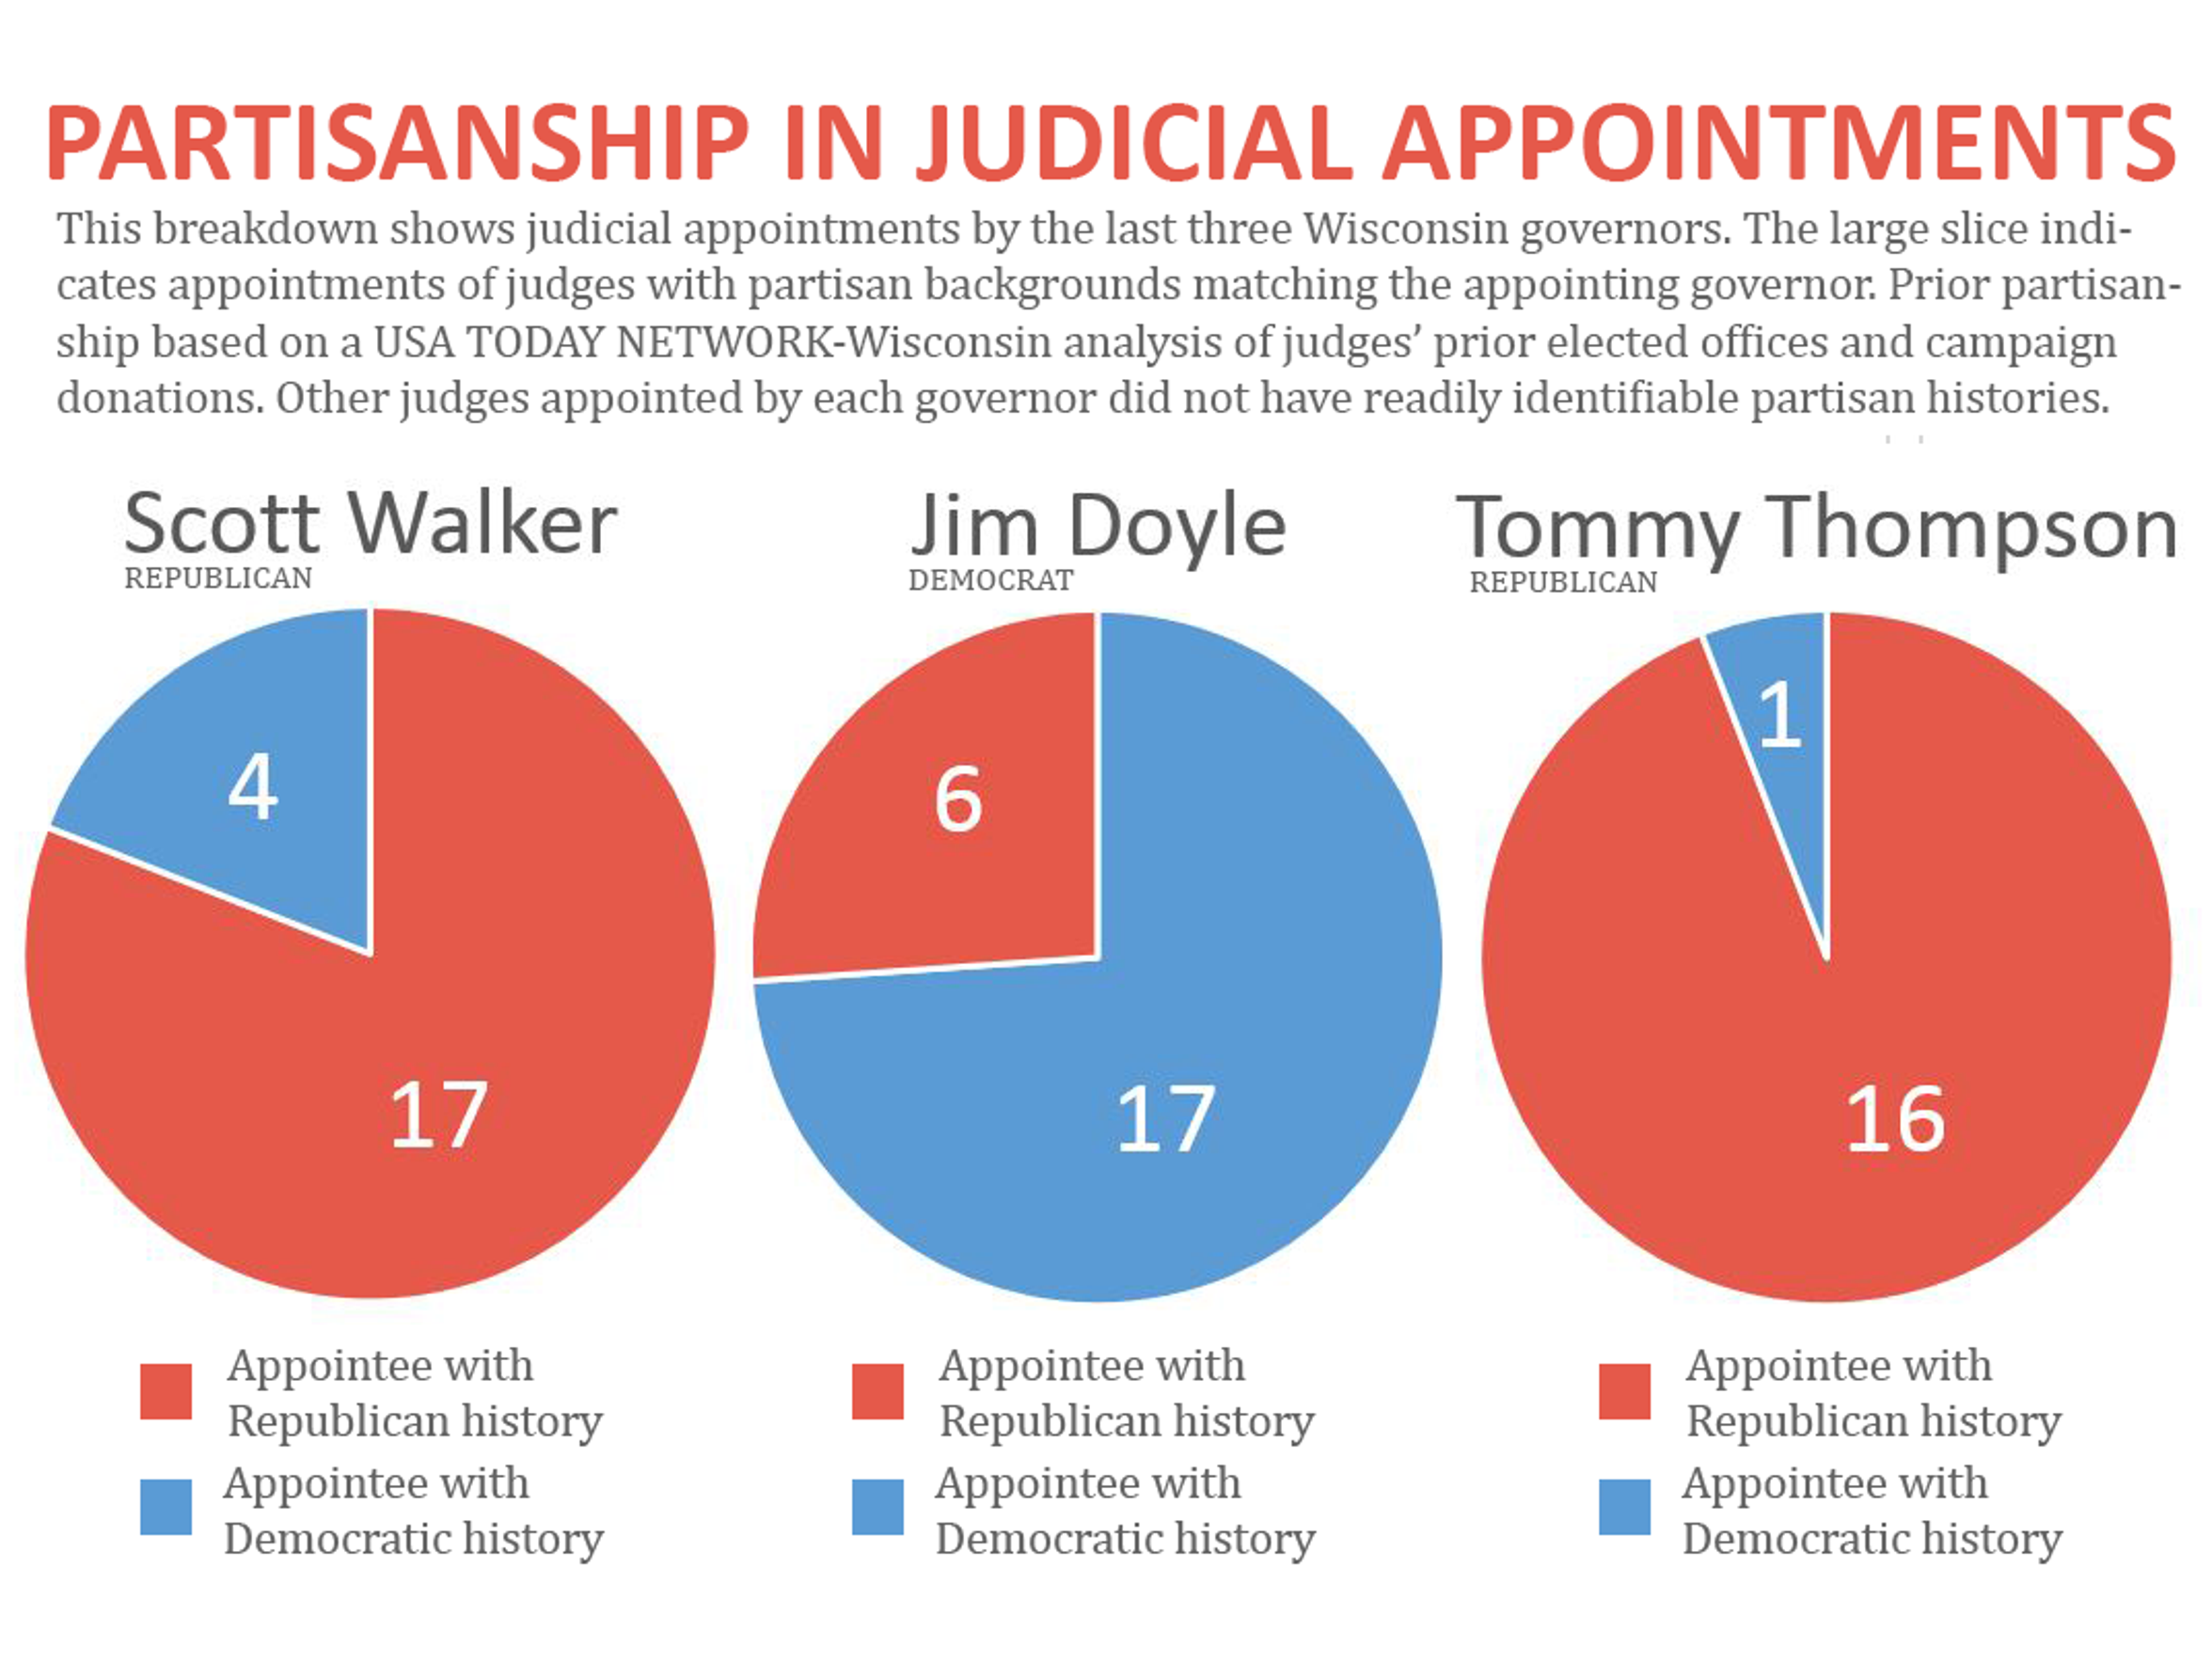 Graph shows the partisan split for circuit court appointments